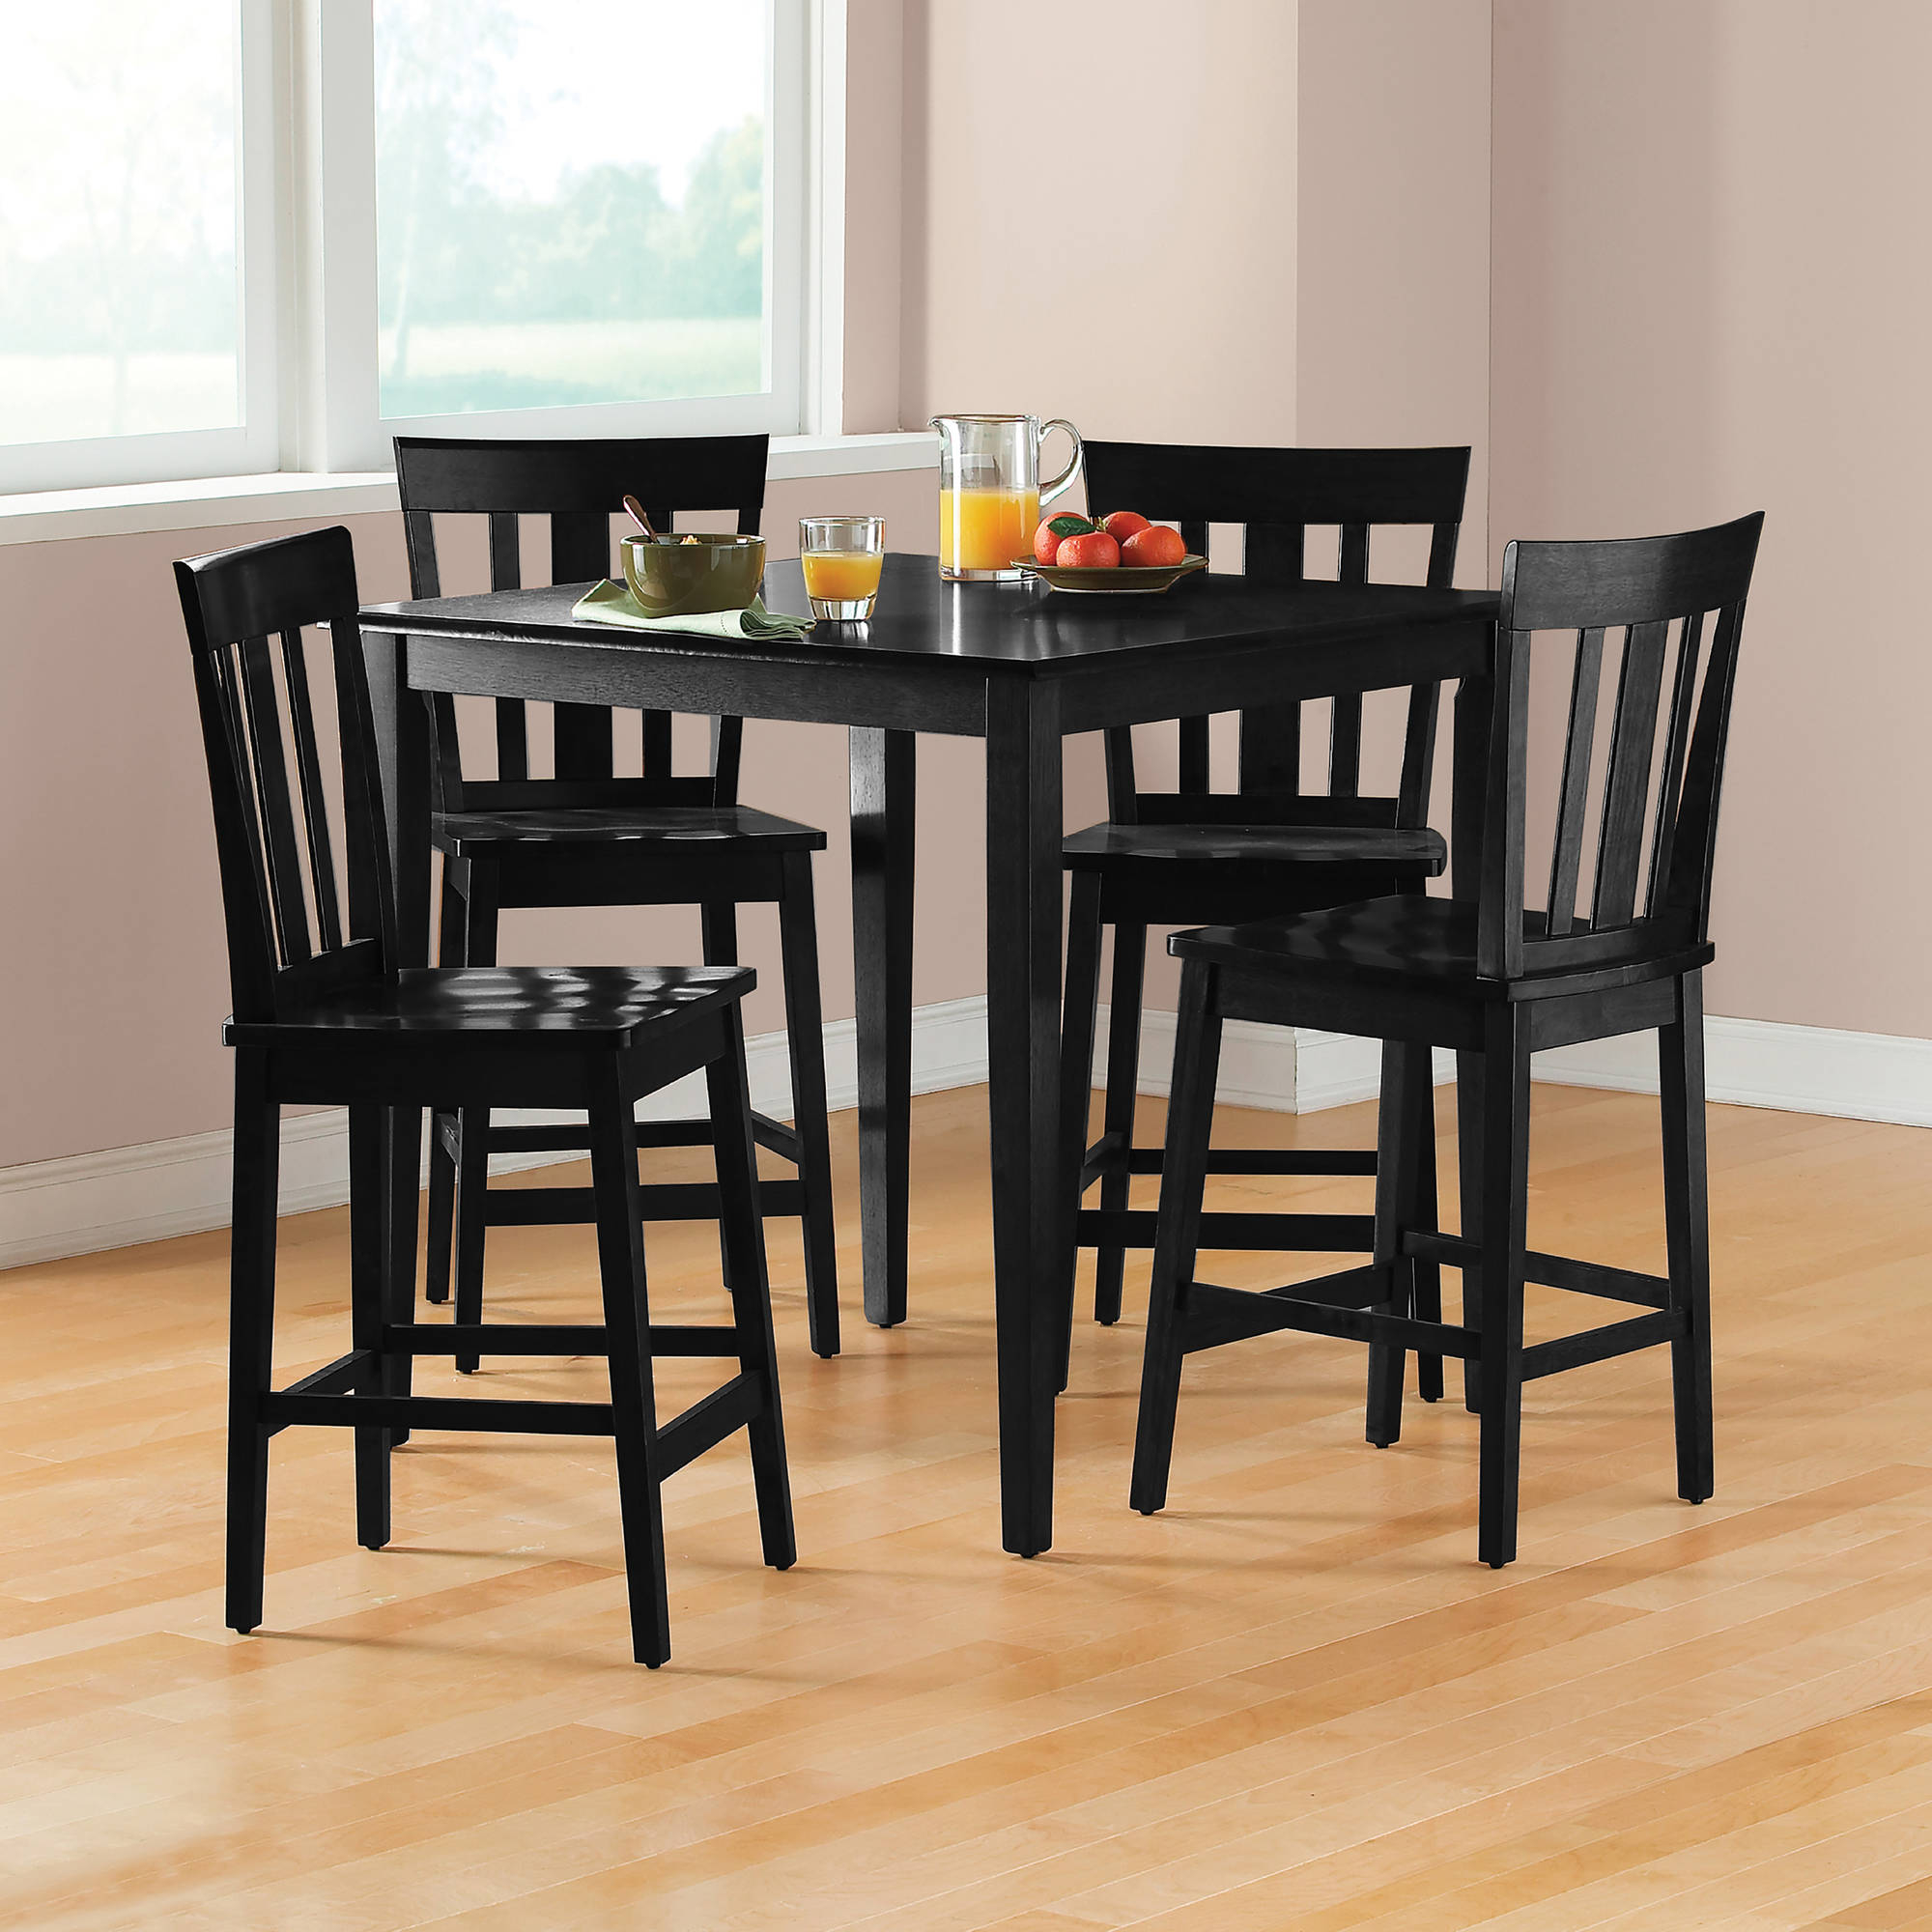 Mainstays 5 Piece Mission Counter Height Dining Set Walmart